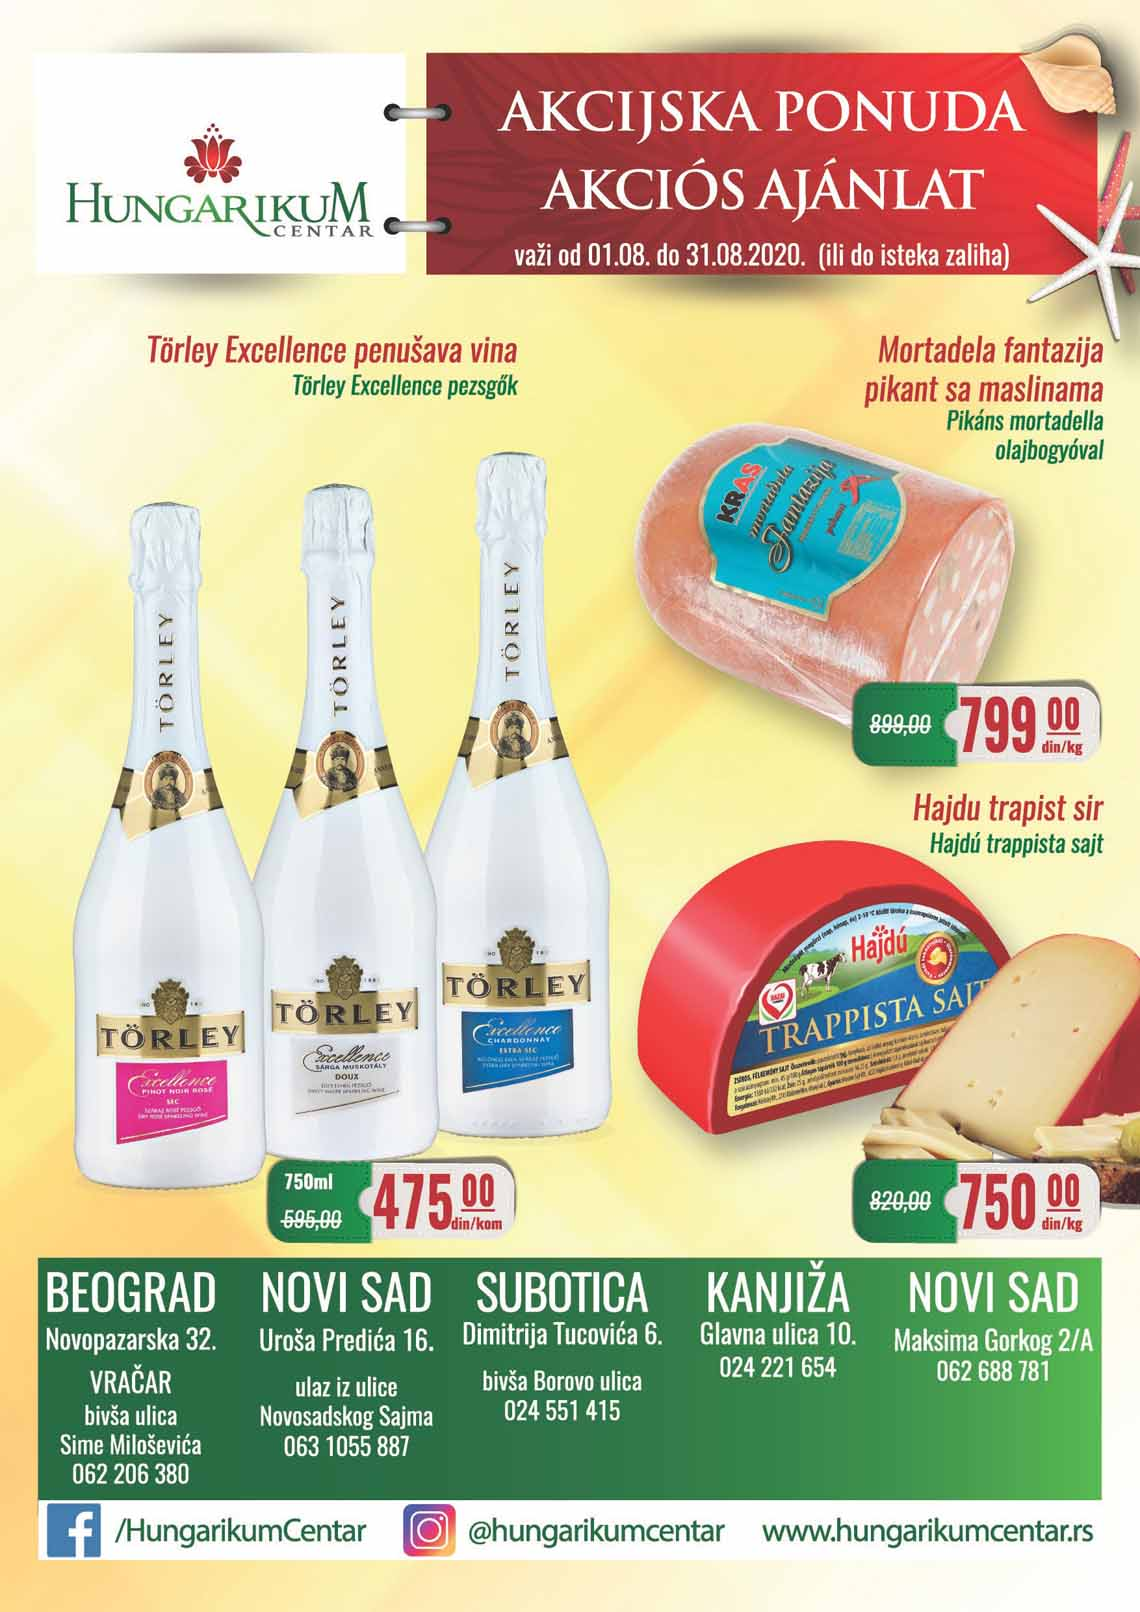 HUNGARIKUM KATALOG - Super akcija sniženja do 31.08.2020.